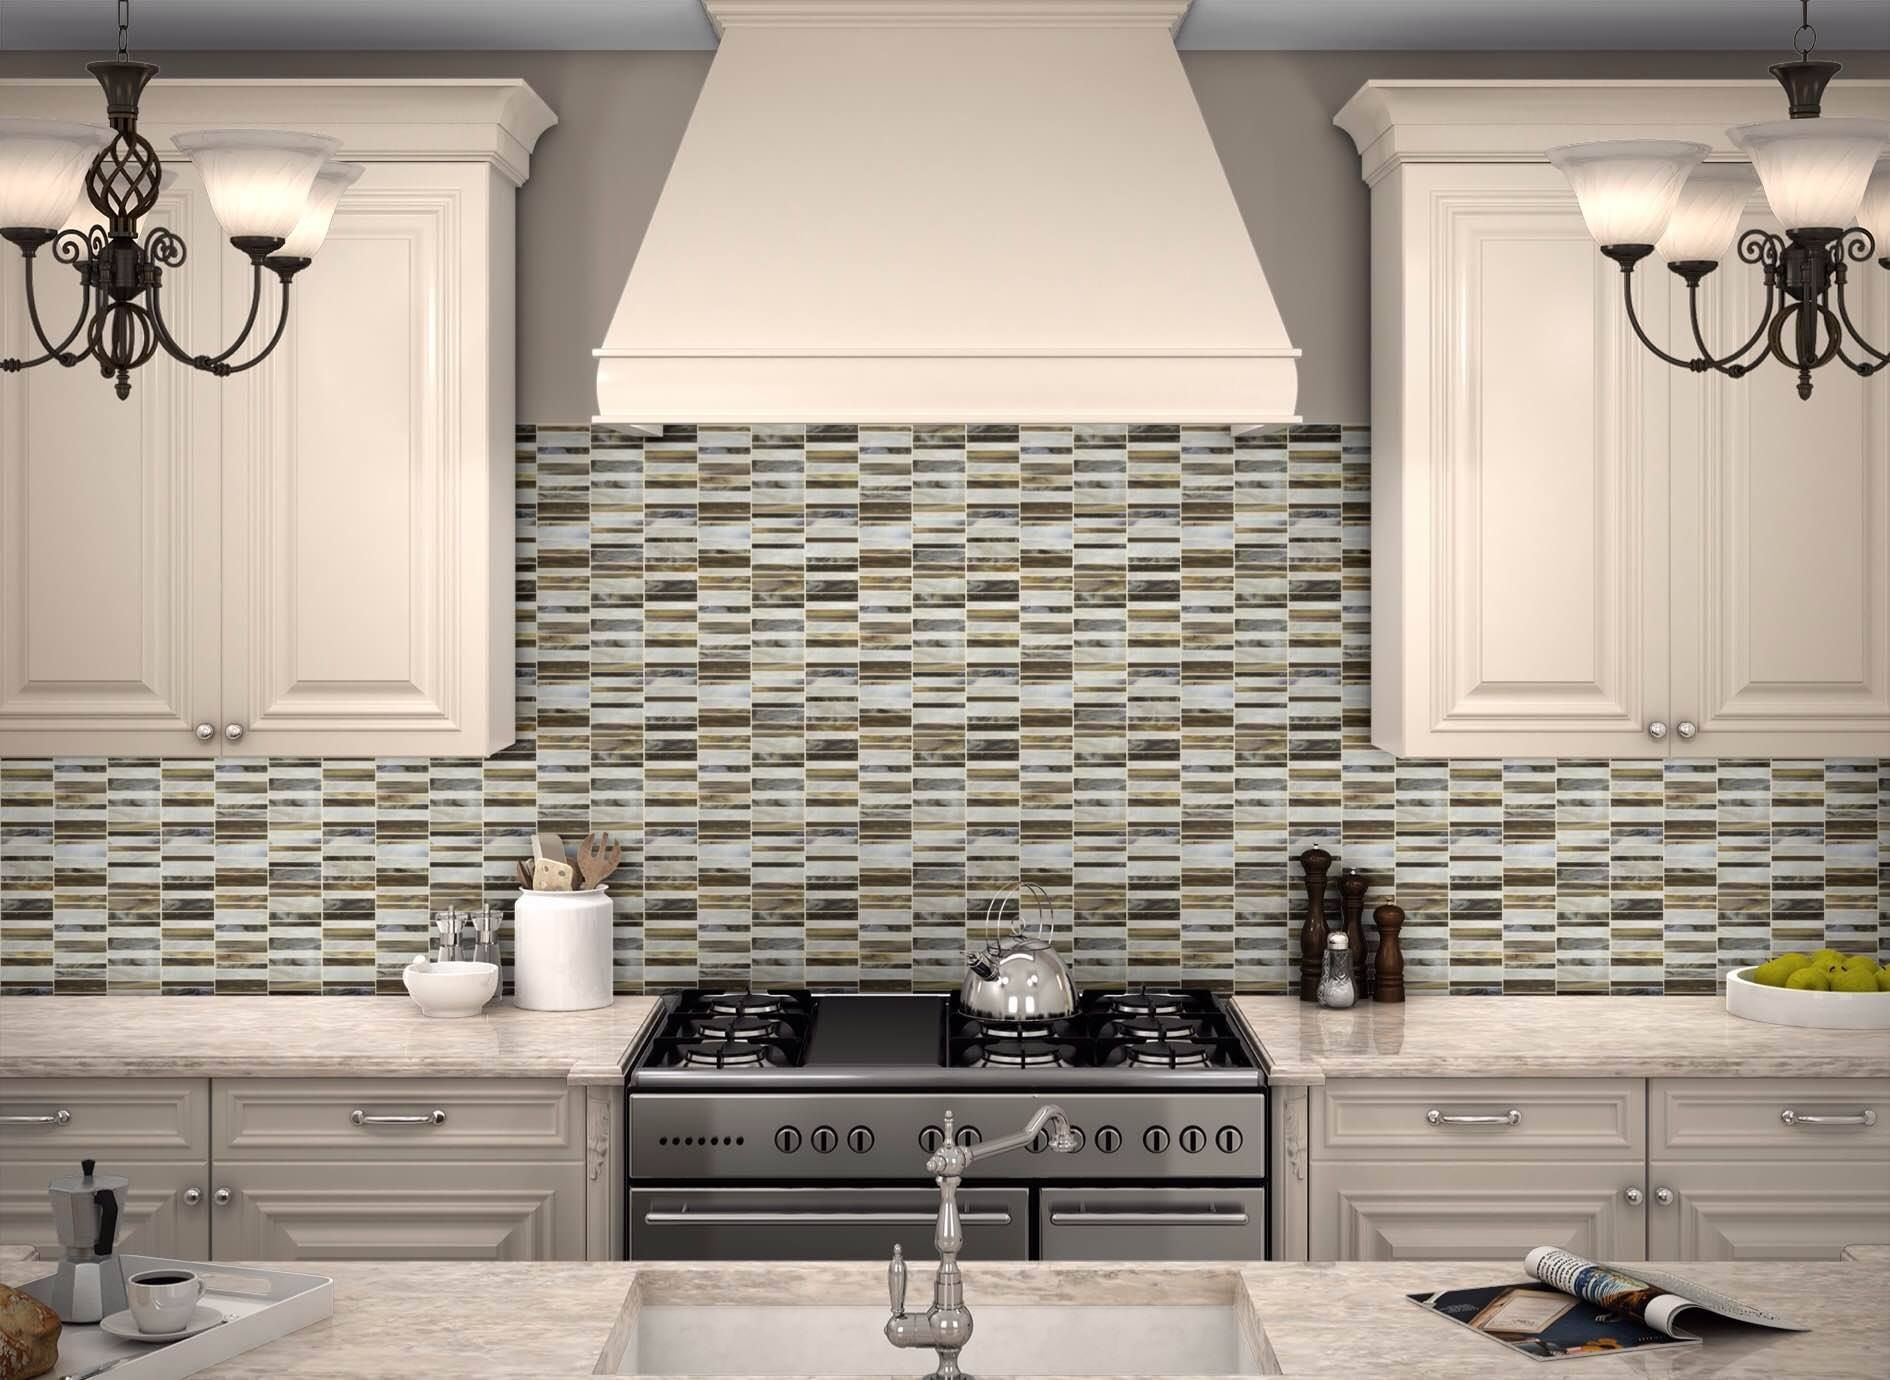 Design Evo Tiles Anatolia Bliss Baroque Backsplash Arley Evolution Tile